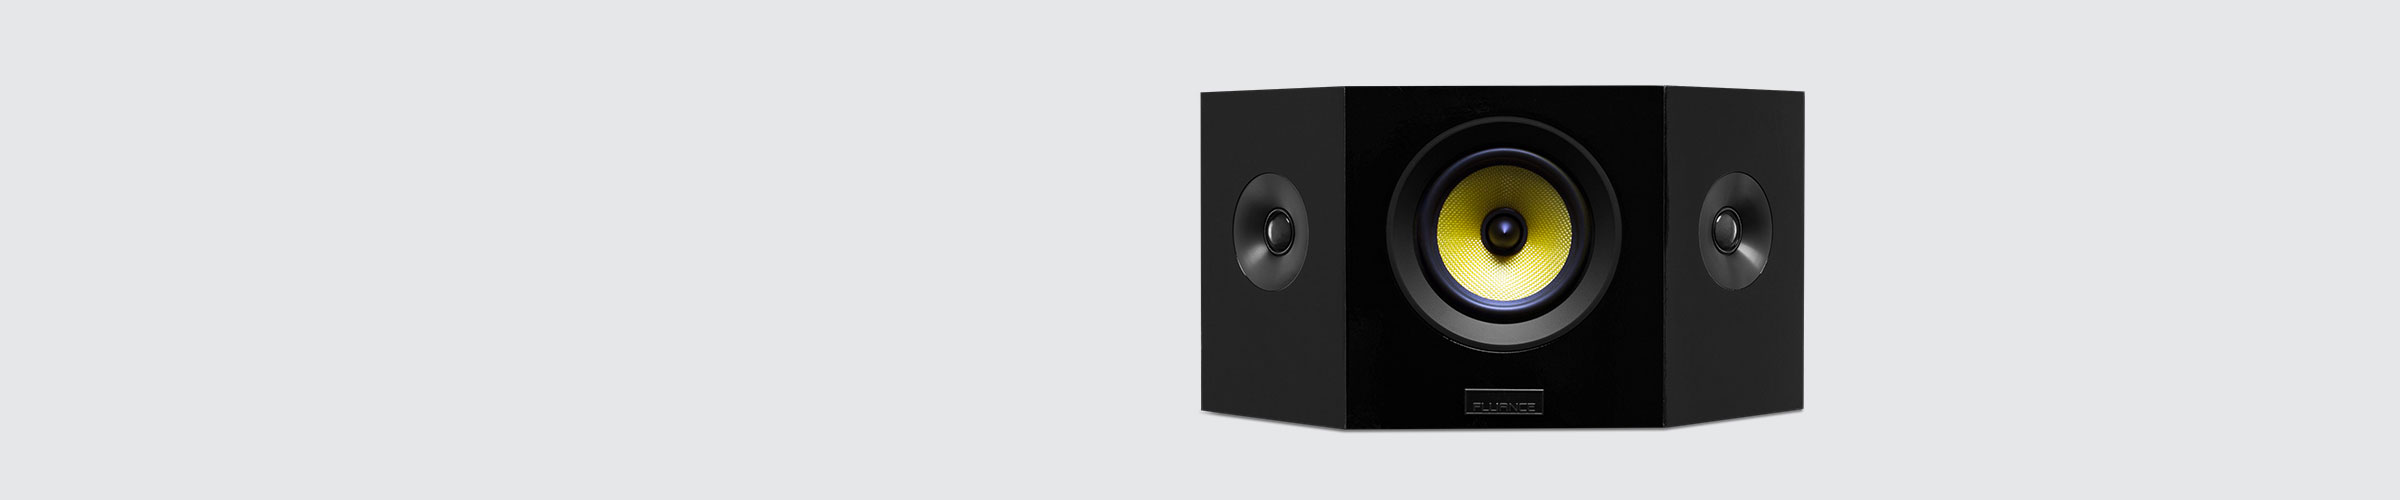 Signature Series Bipolar speakers- bipolar